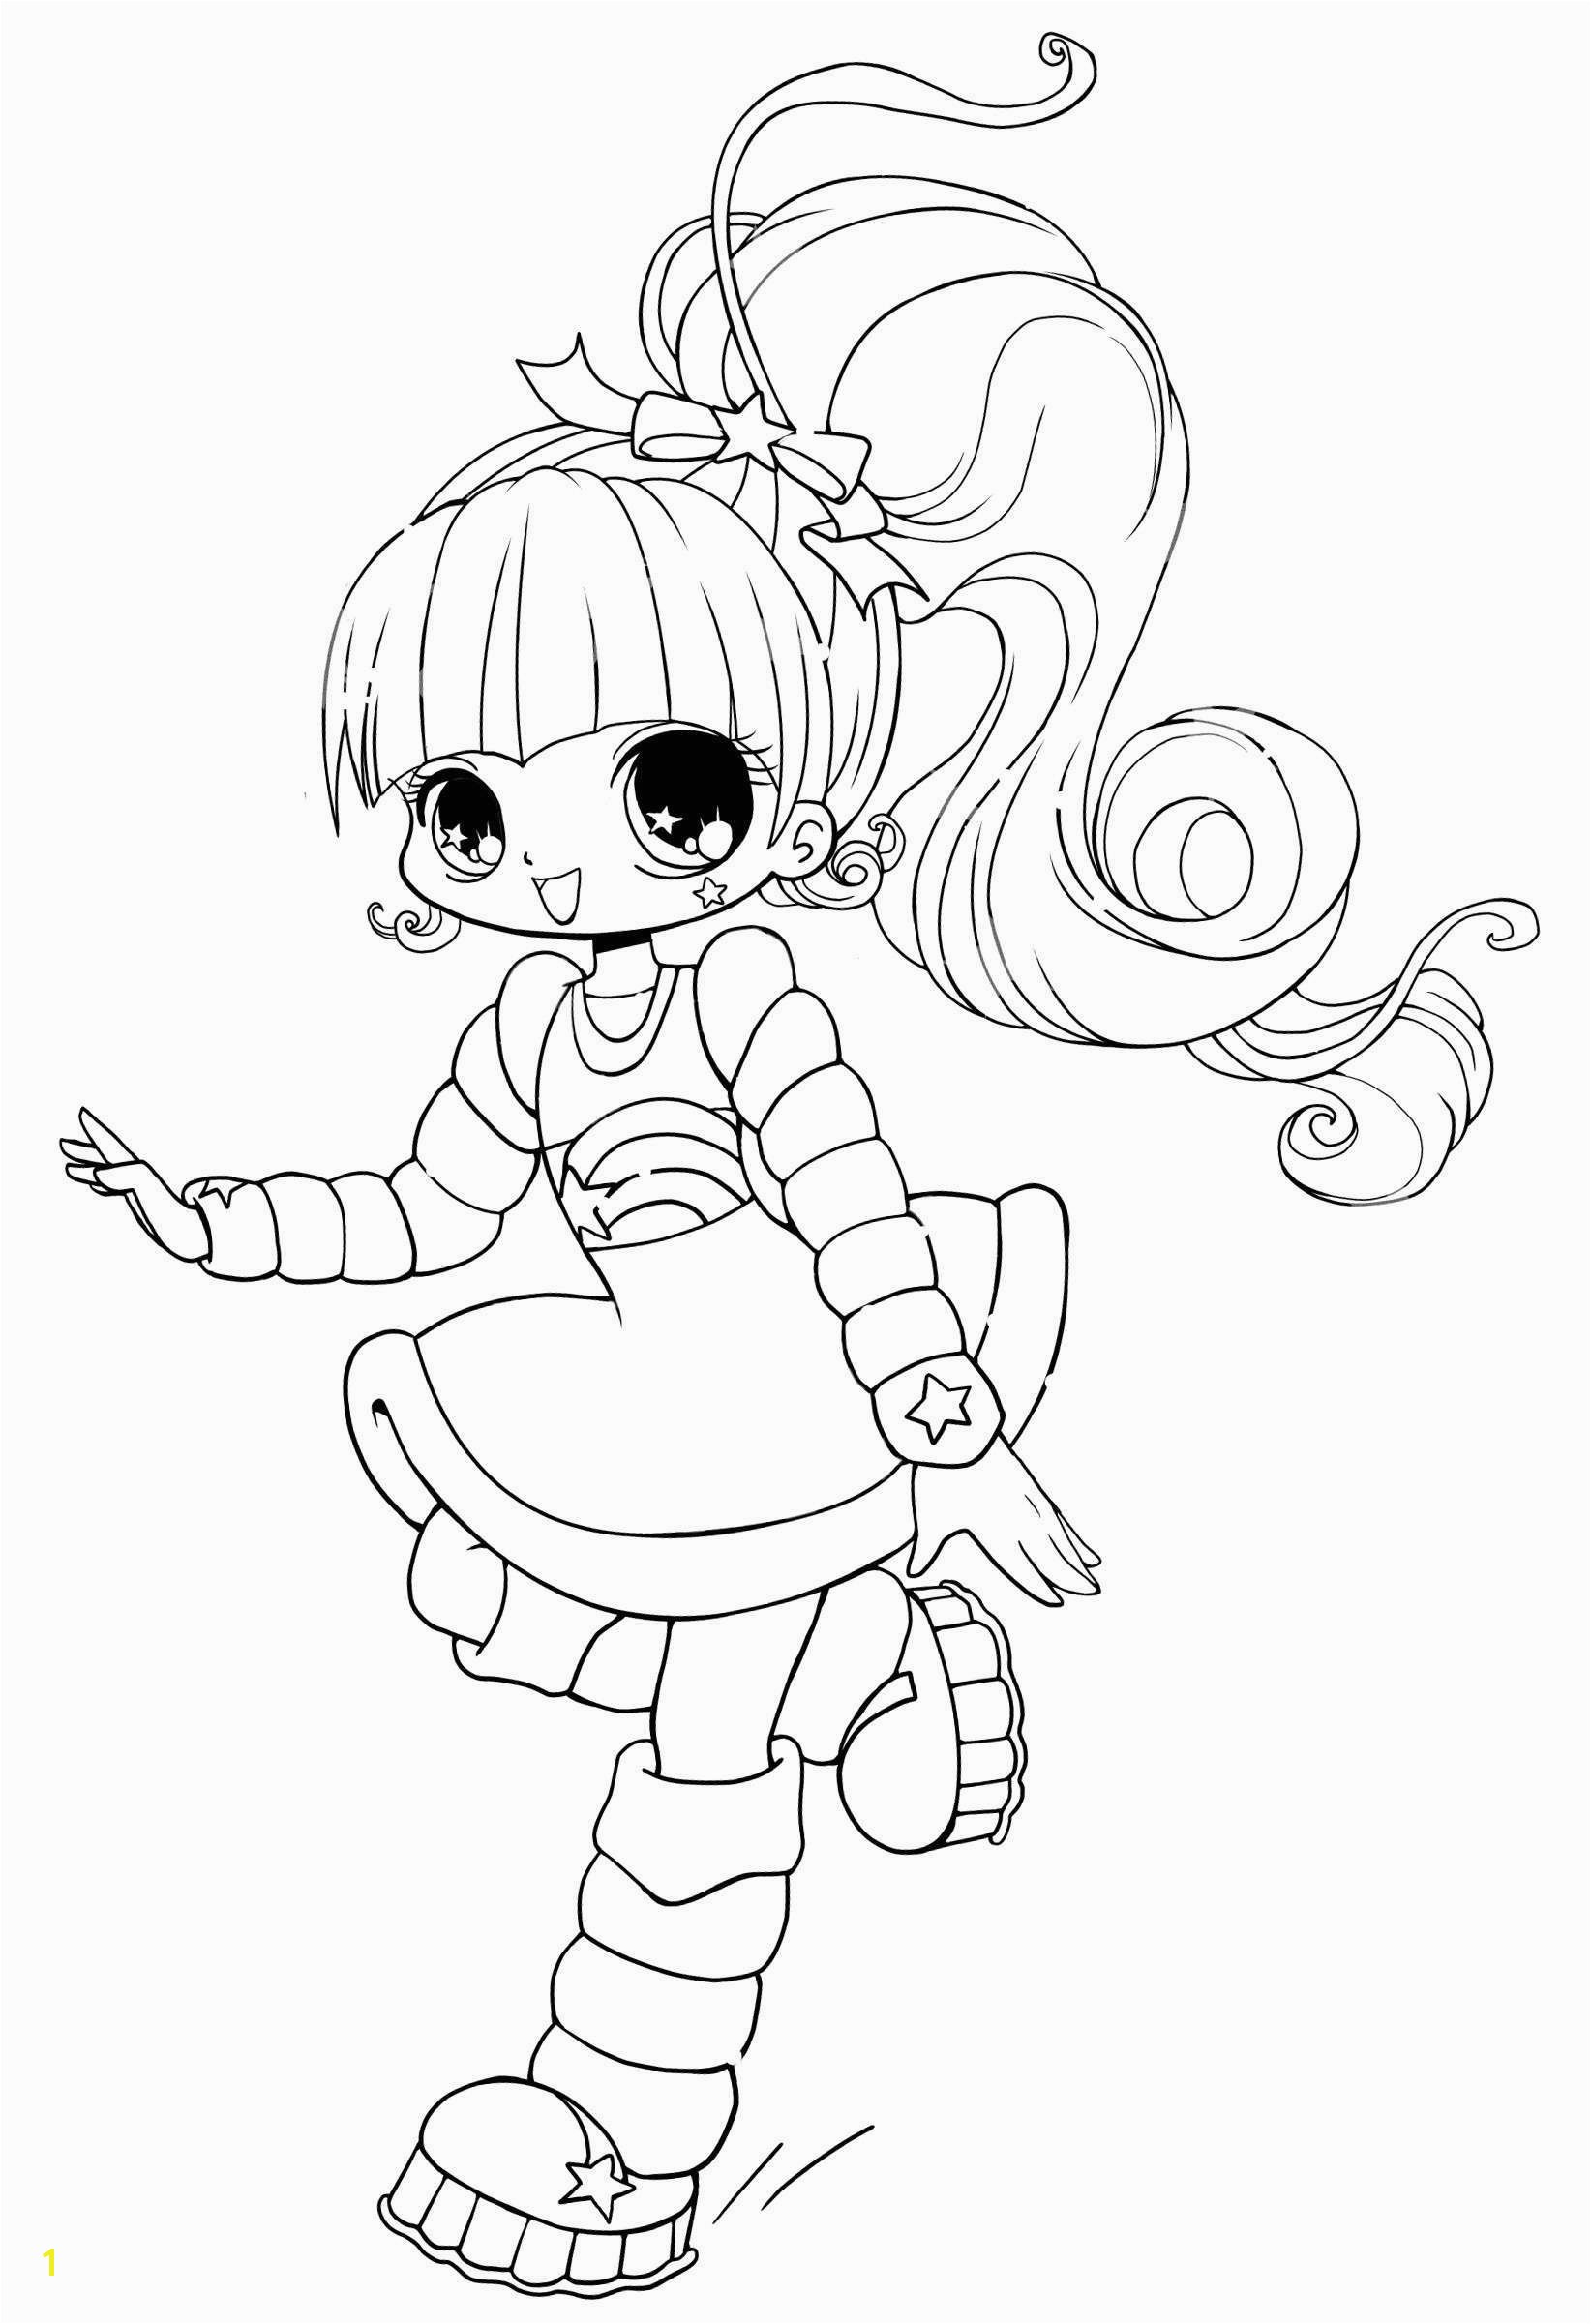 Cute Anime Chibi Coloring Pages Coloring Witch Coloring Page Inspirational Crayola Pages 0d Coloring Page